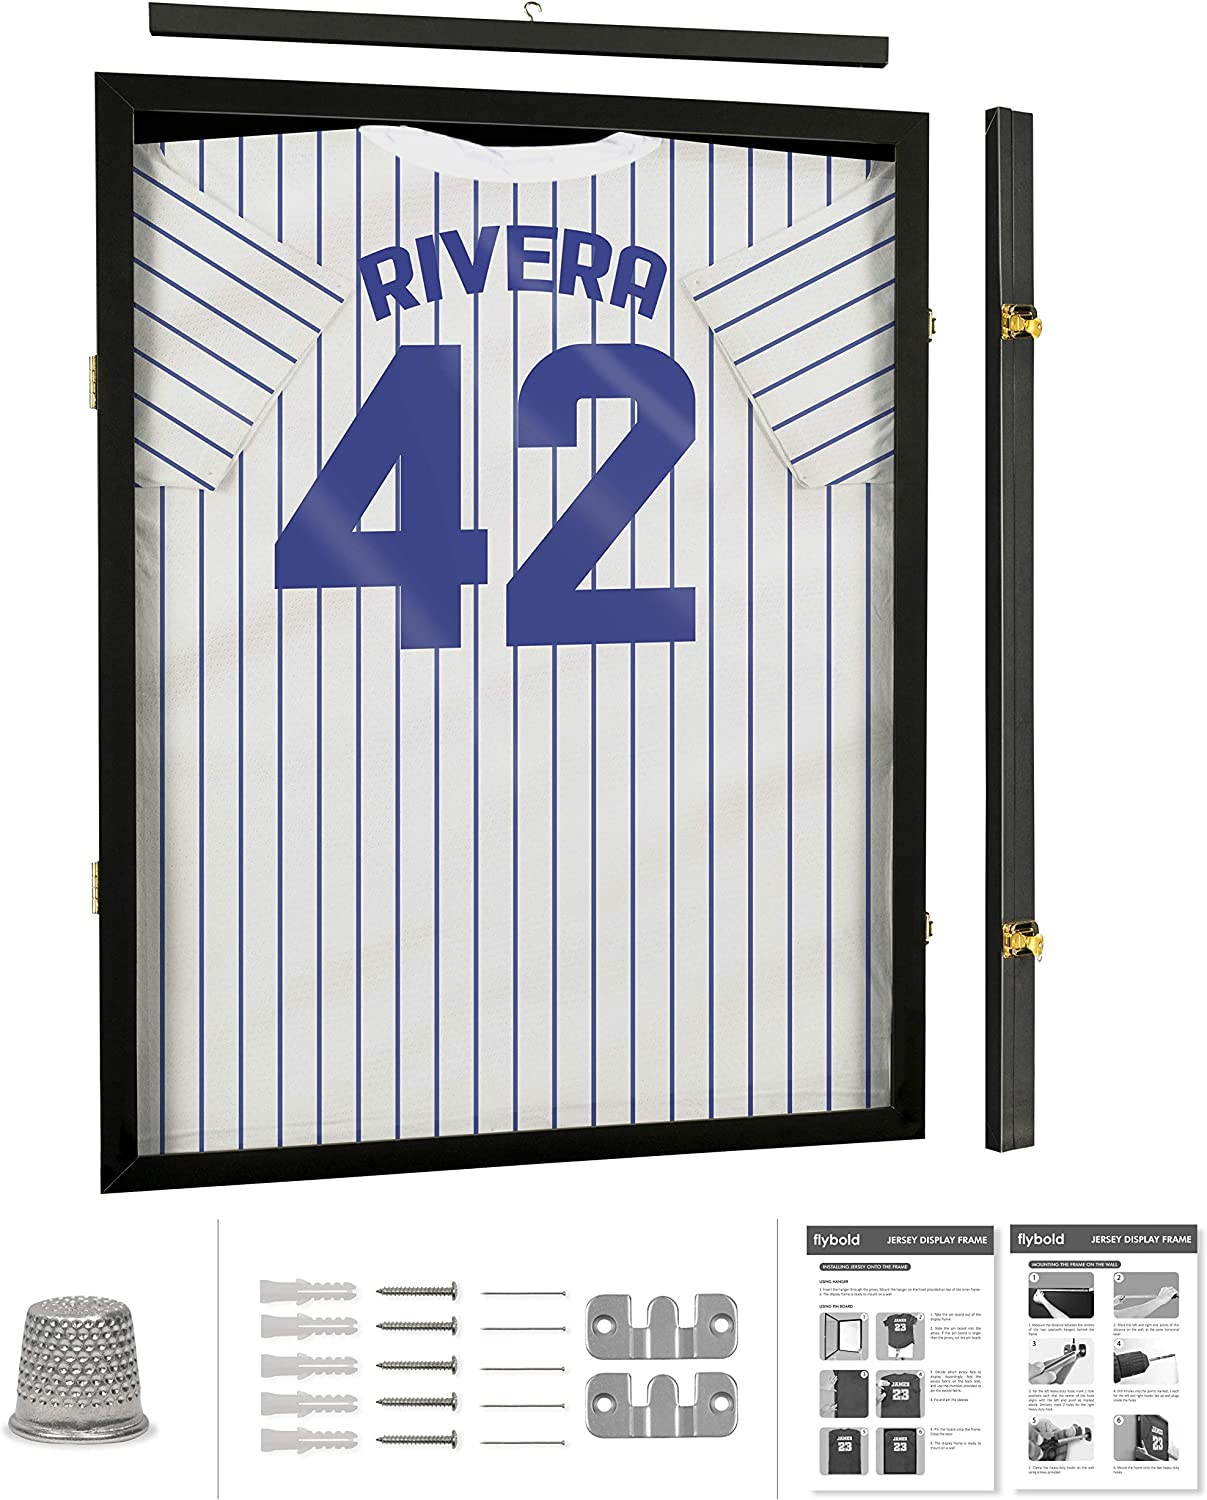 Jersey Display Frame Case Large Frames Shadow Box Lockable with UV Protection Acrylic Hanger and Wall Mount Option for Baseball Basketball Football Soccer Hockey Sport Shirt Black Finish